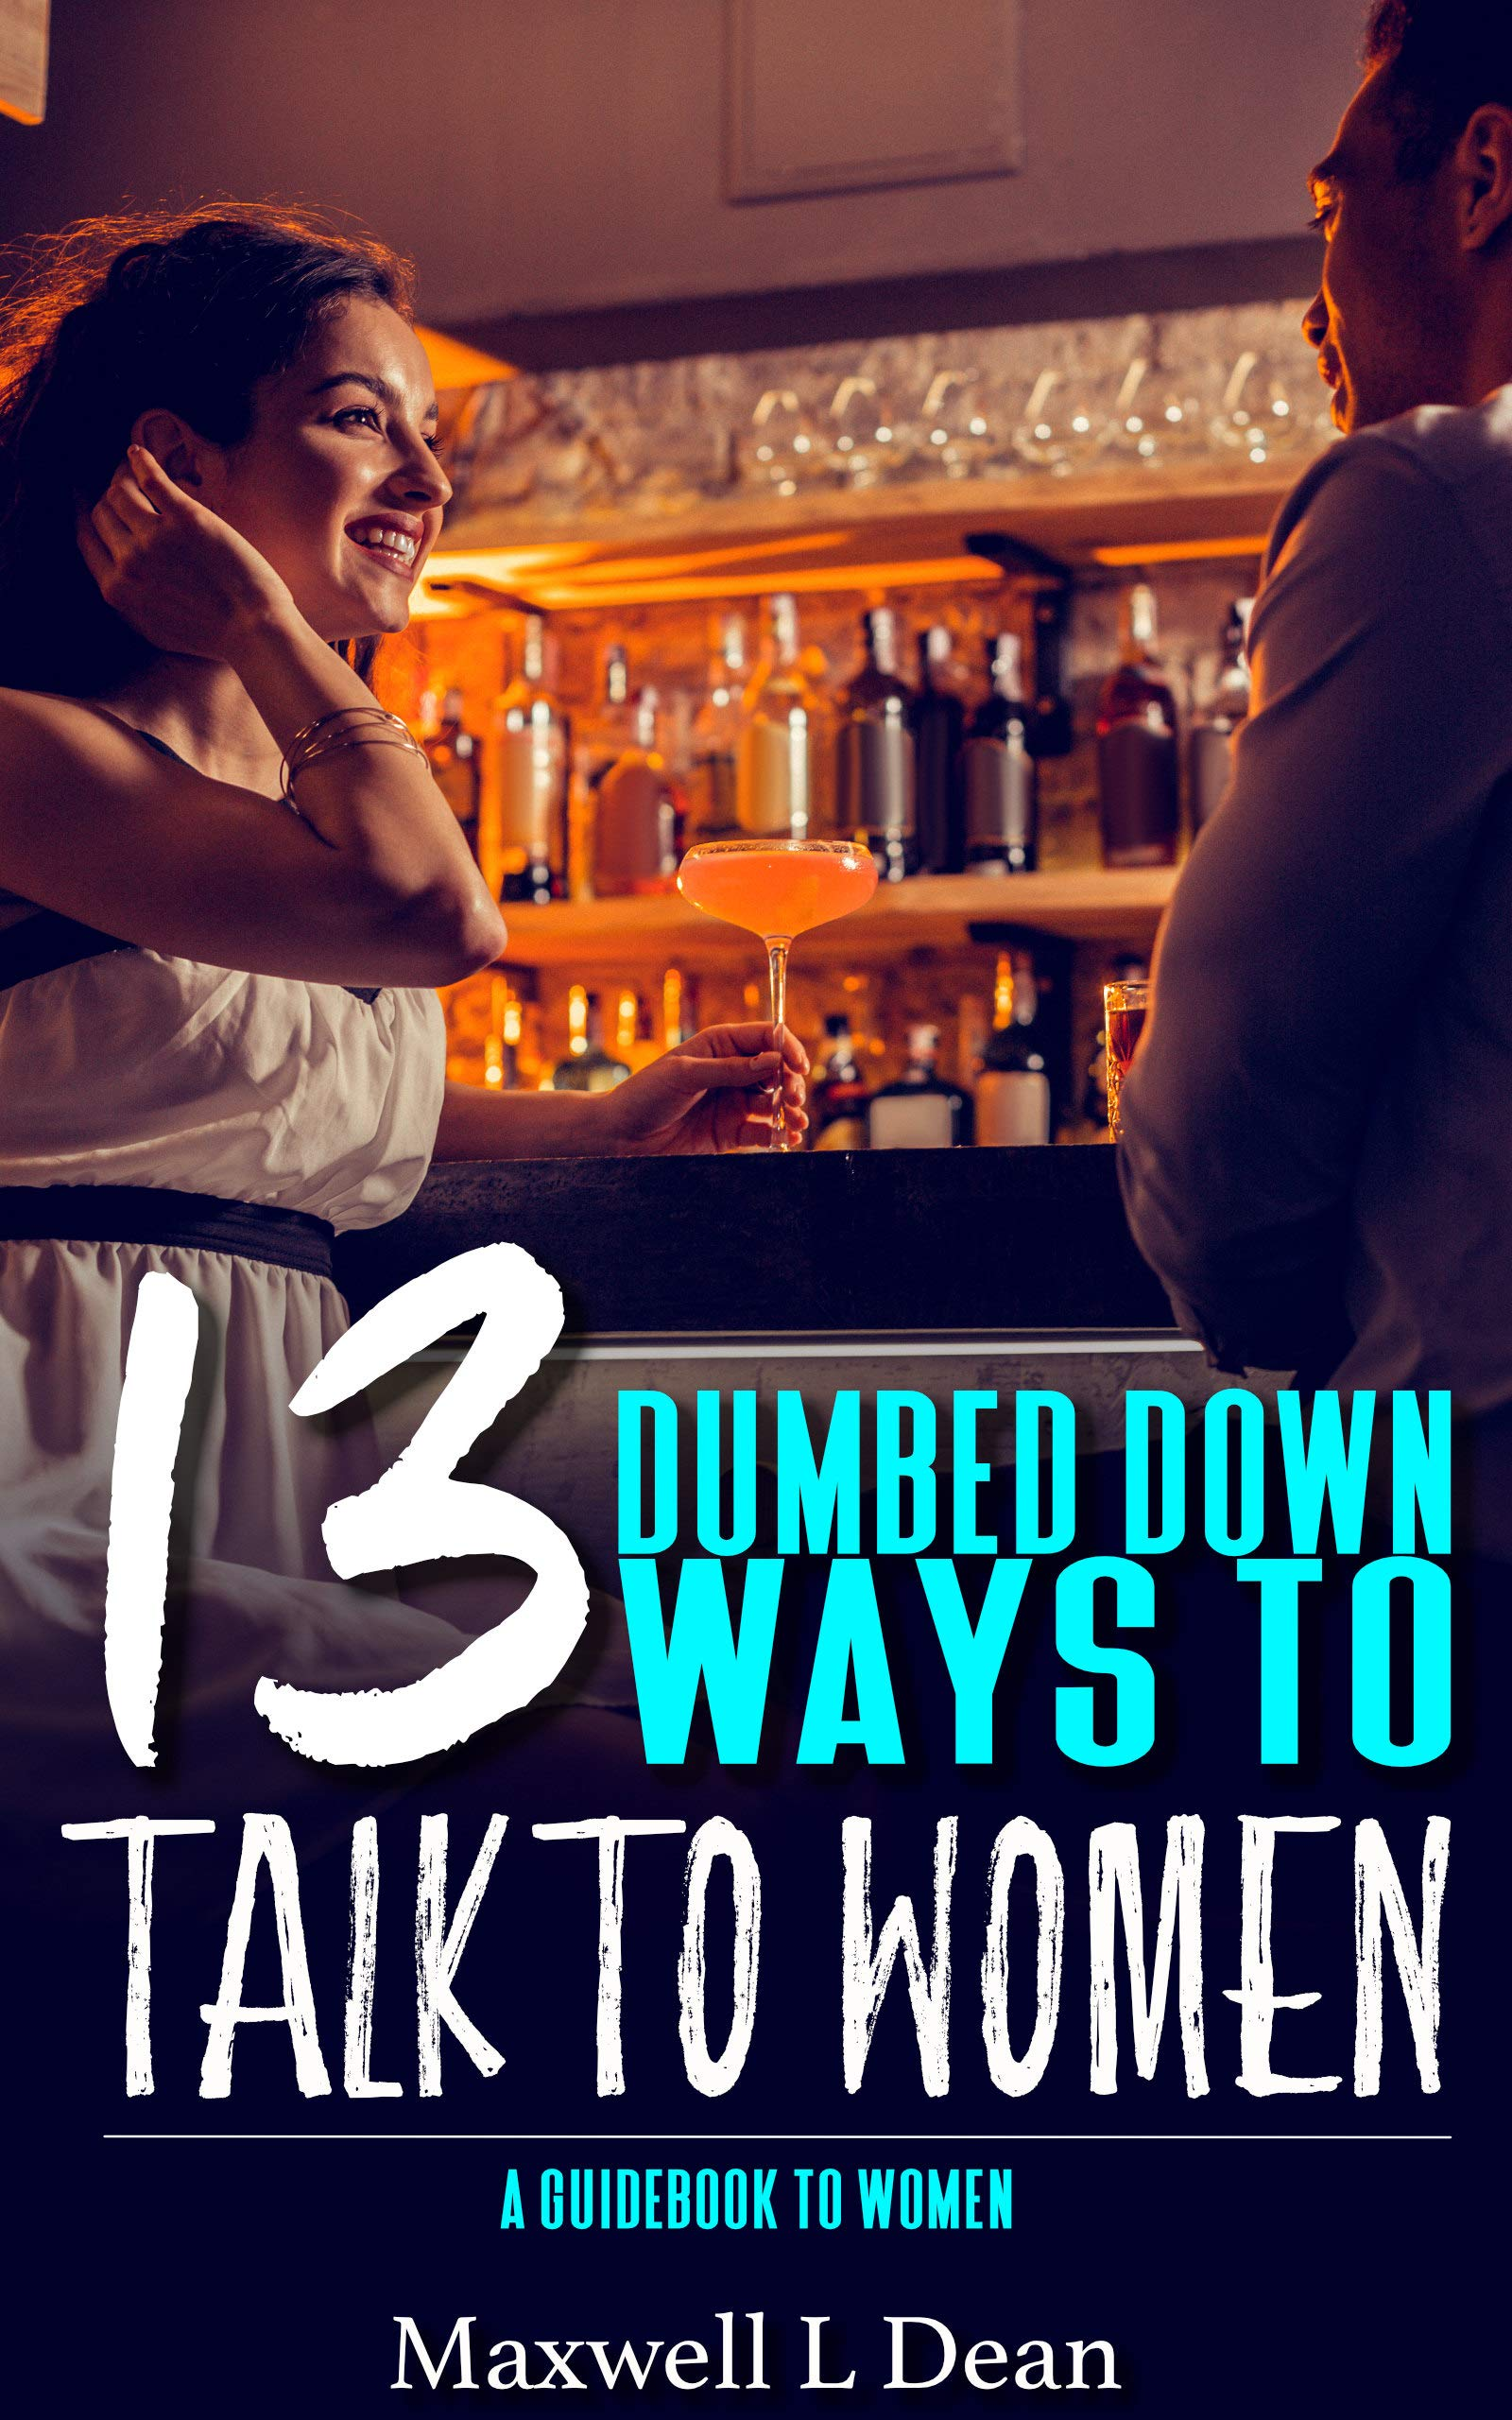 13 Dumbed down ways to talk to women: A guidebook to talking to women